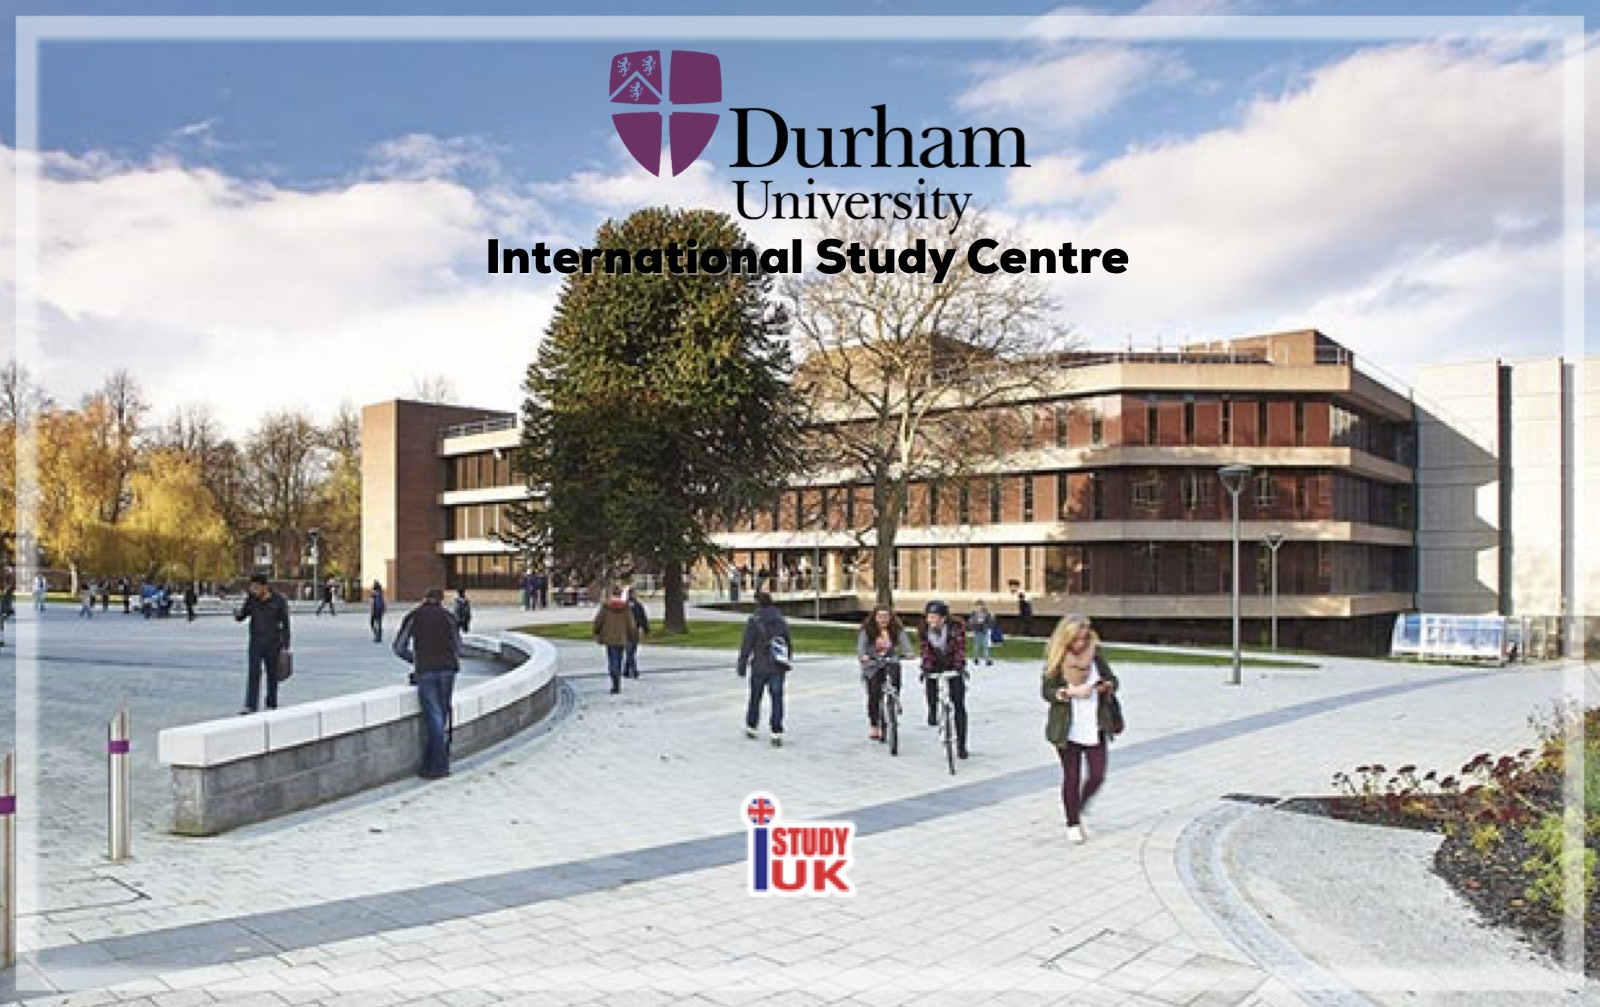 durham-university-isc-study-group-thailand-สมัครเรียนต่อปริญญาตรีDurhamUniversity StudyGroup